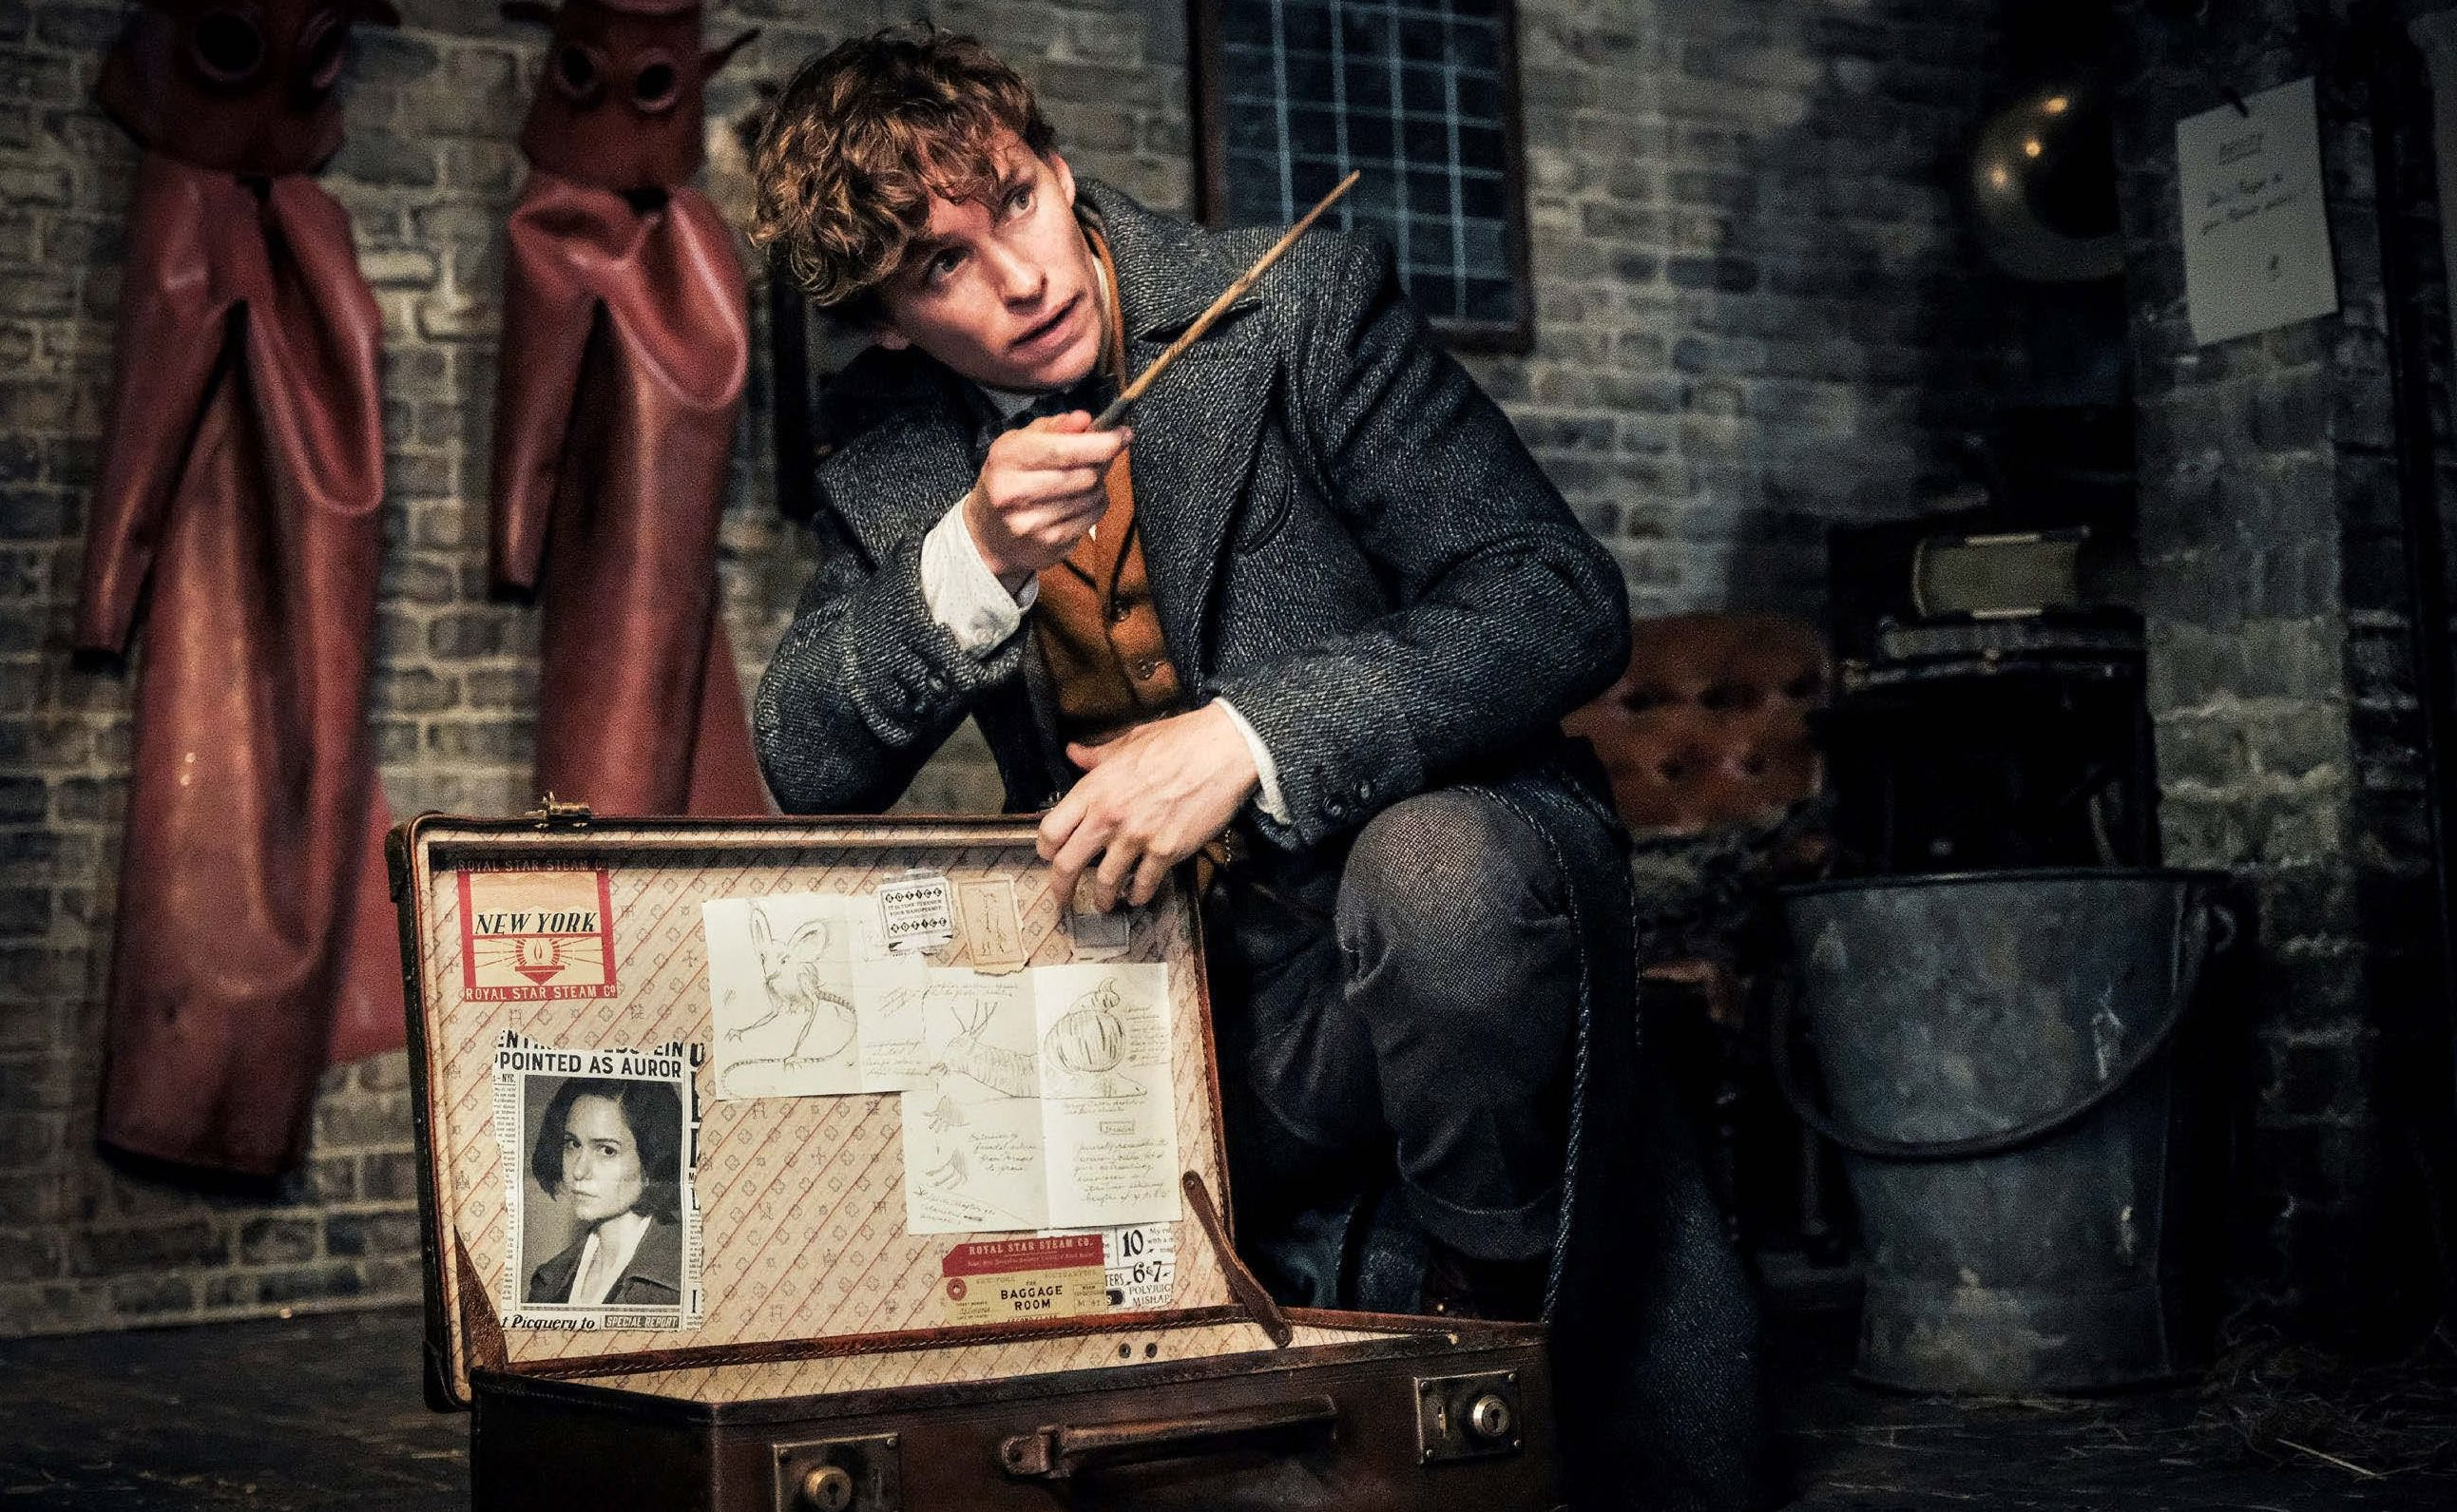 Inside The Crimes Of Grindelwald